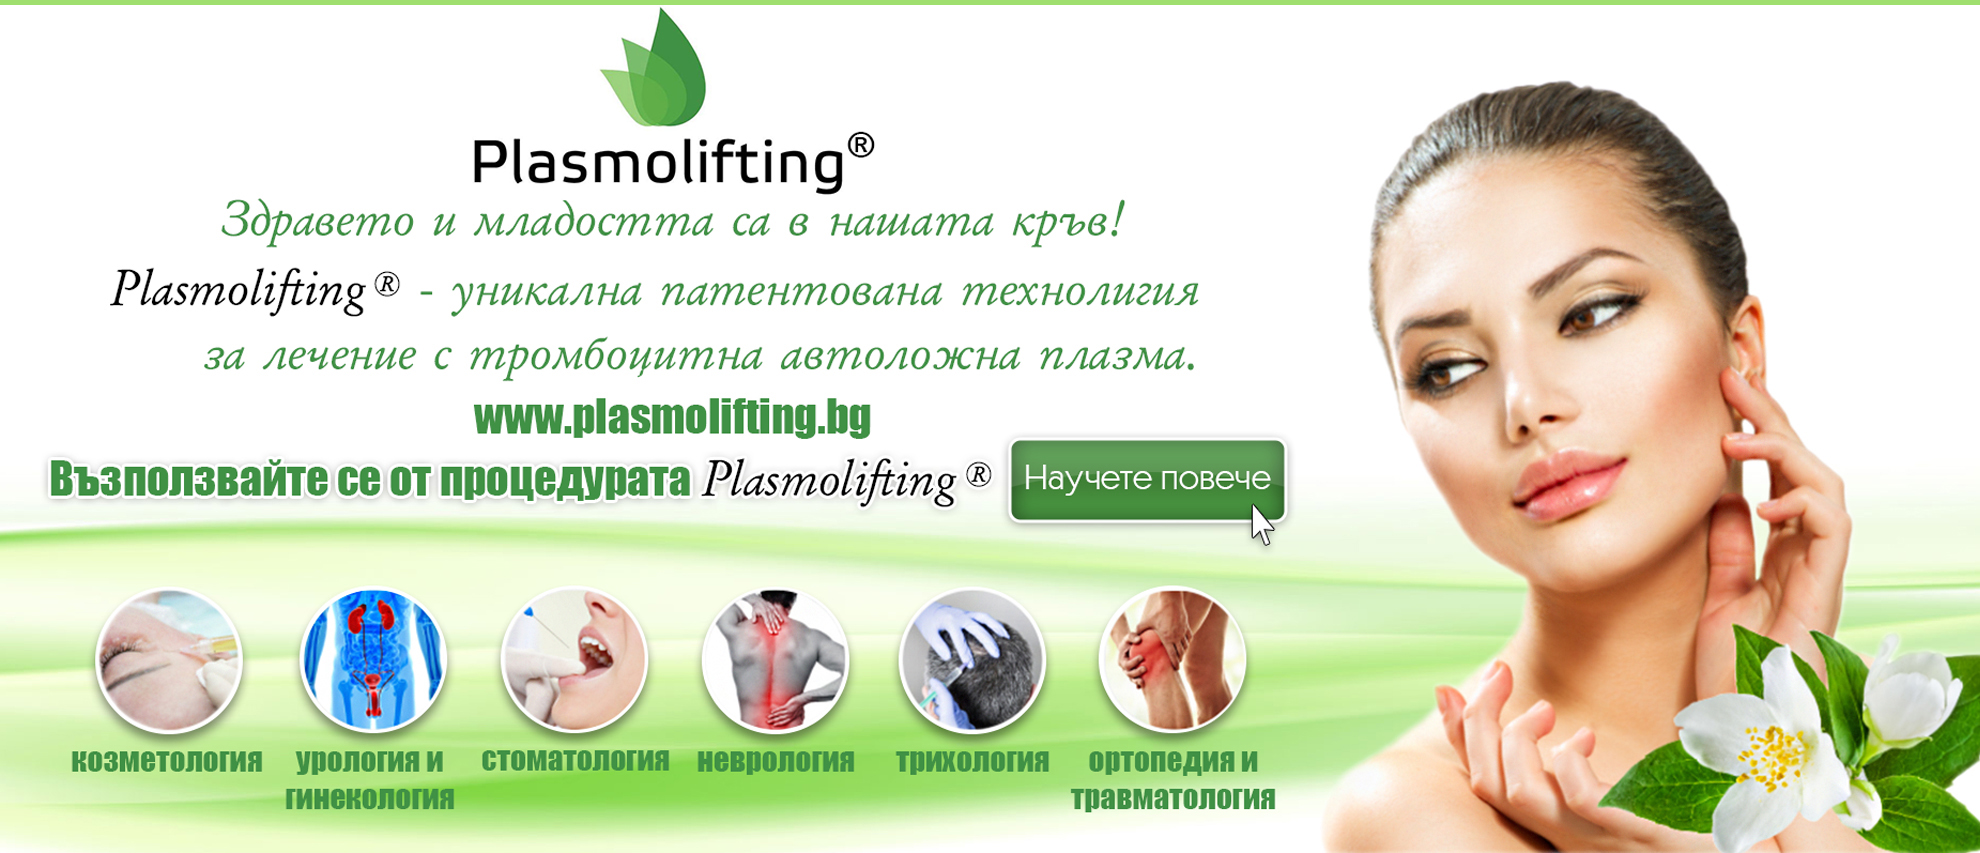 Plasmolifting services